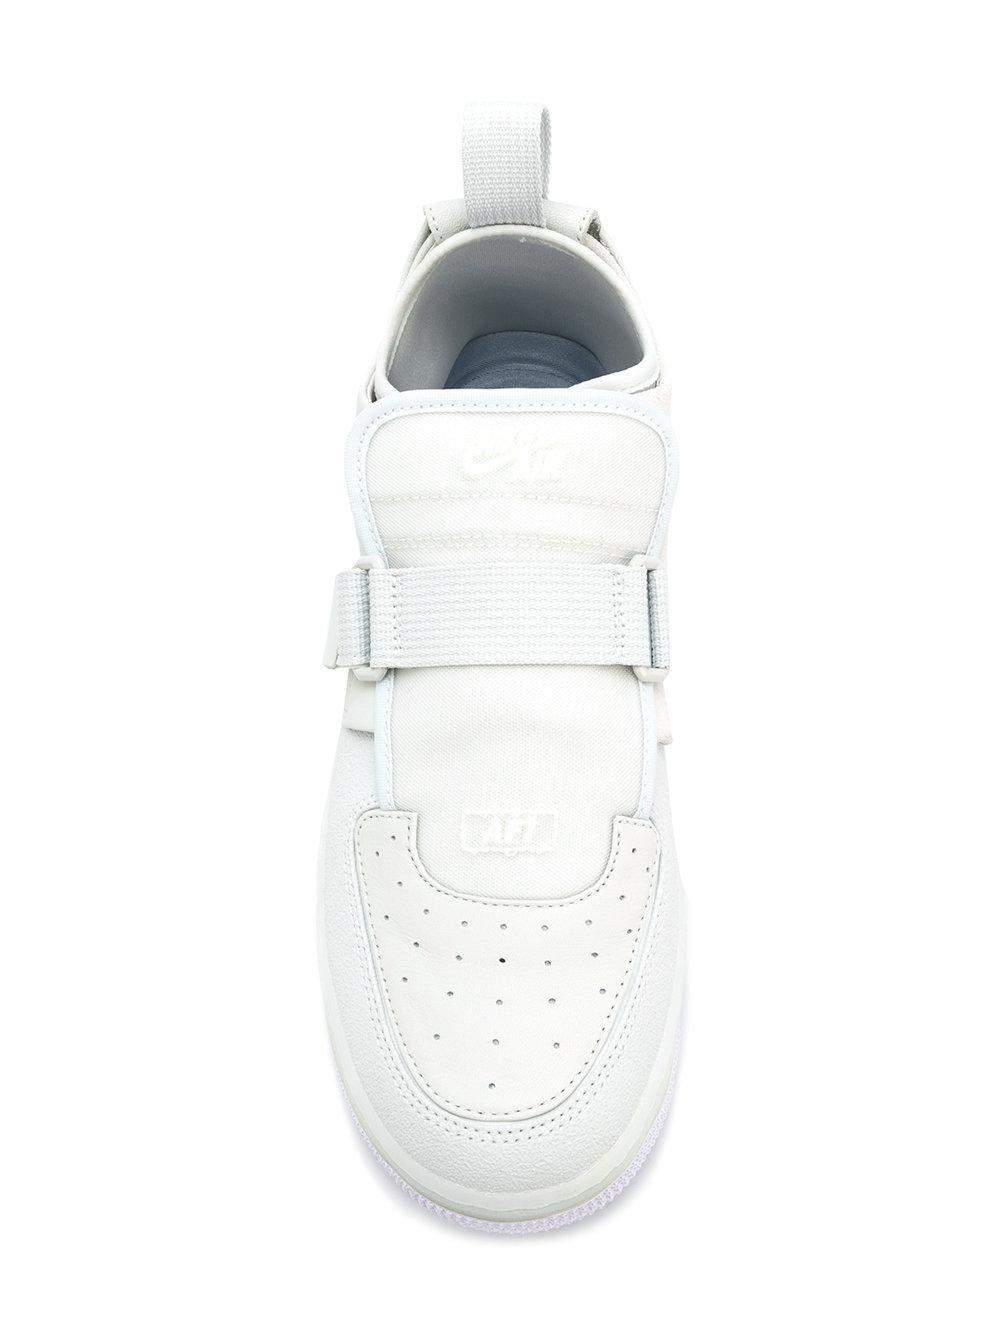 Lyst Nike Air Force 1 Explorer Xx Reimagined Sneakers in White for Men